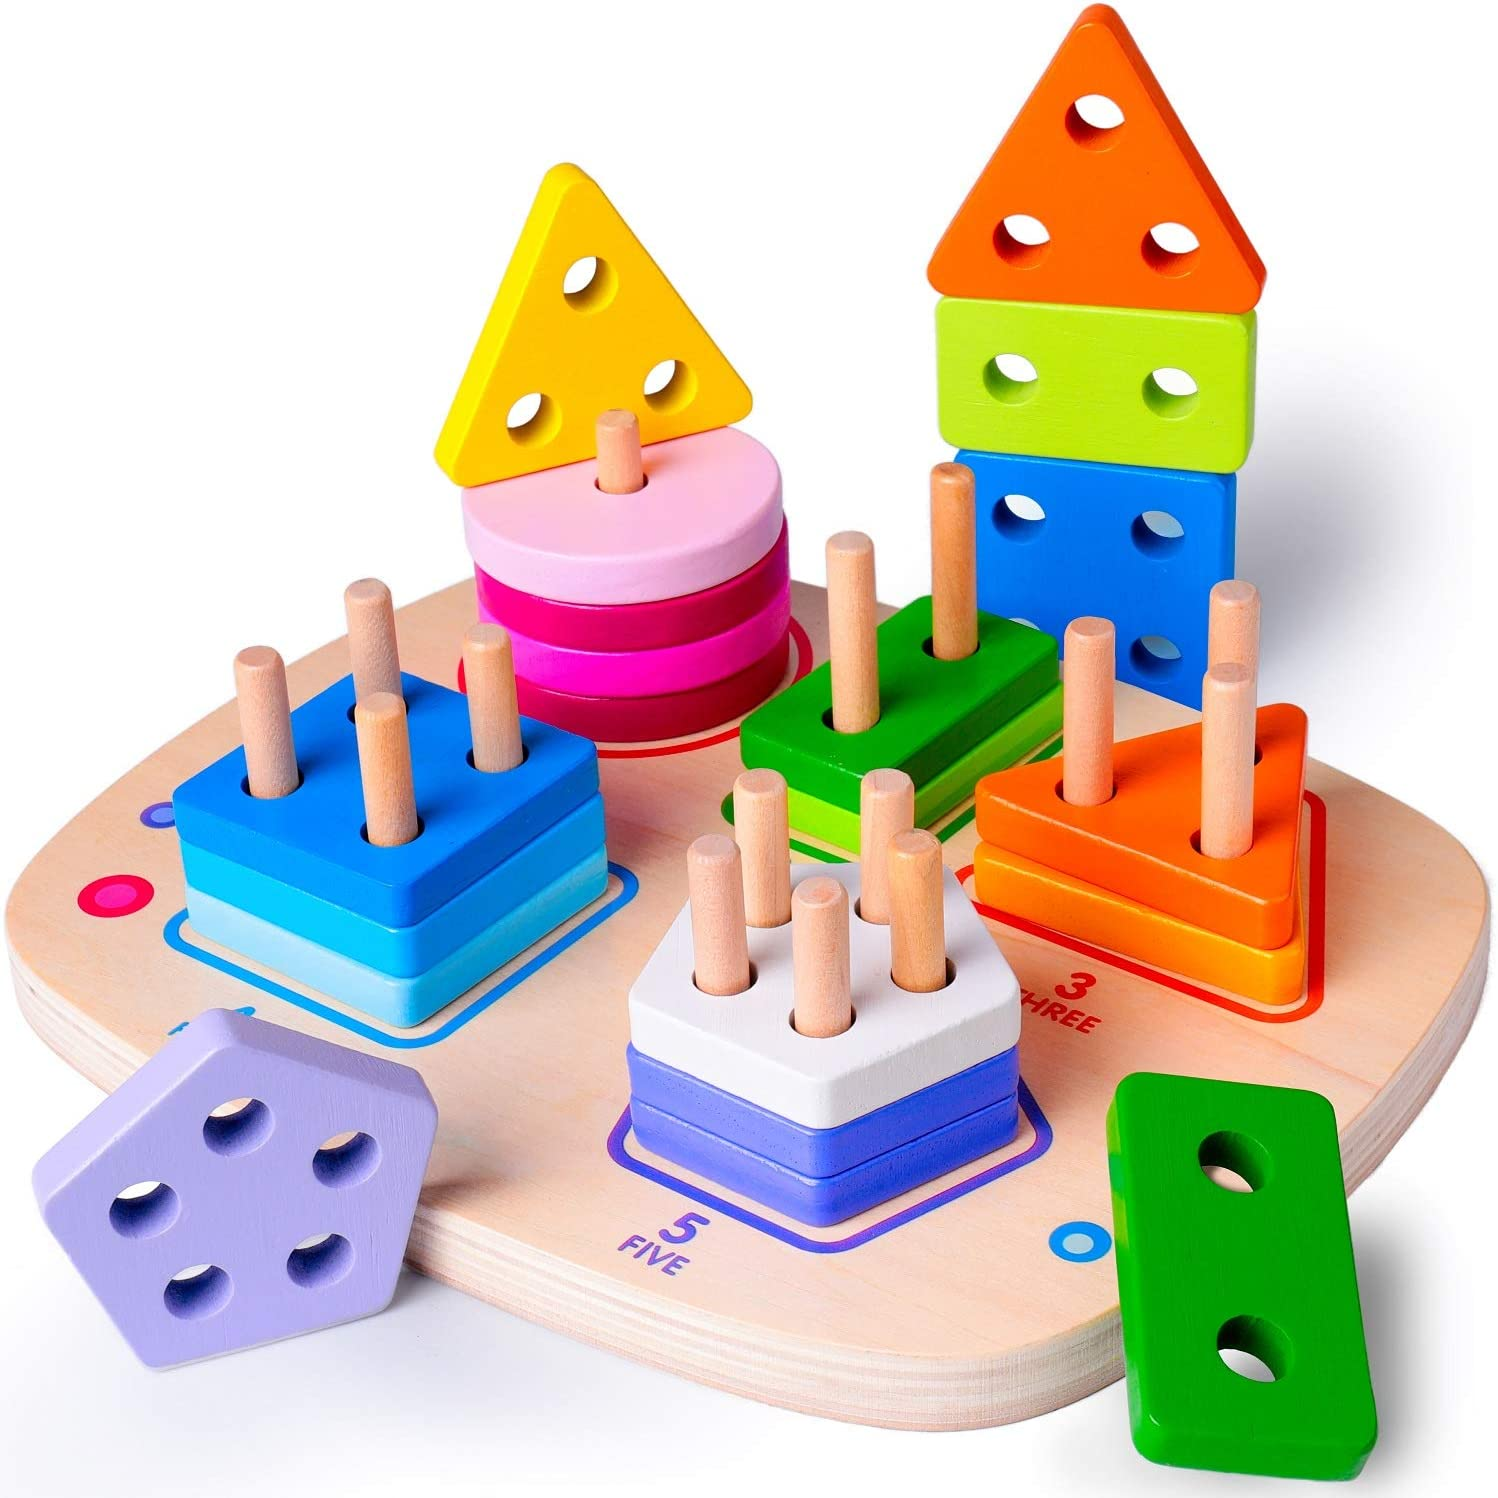 Rolimate-Wooden-Educational-Toys/